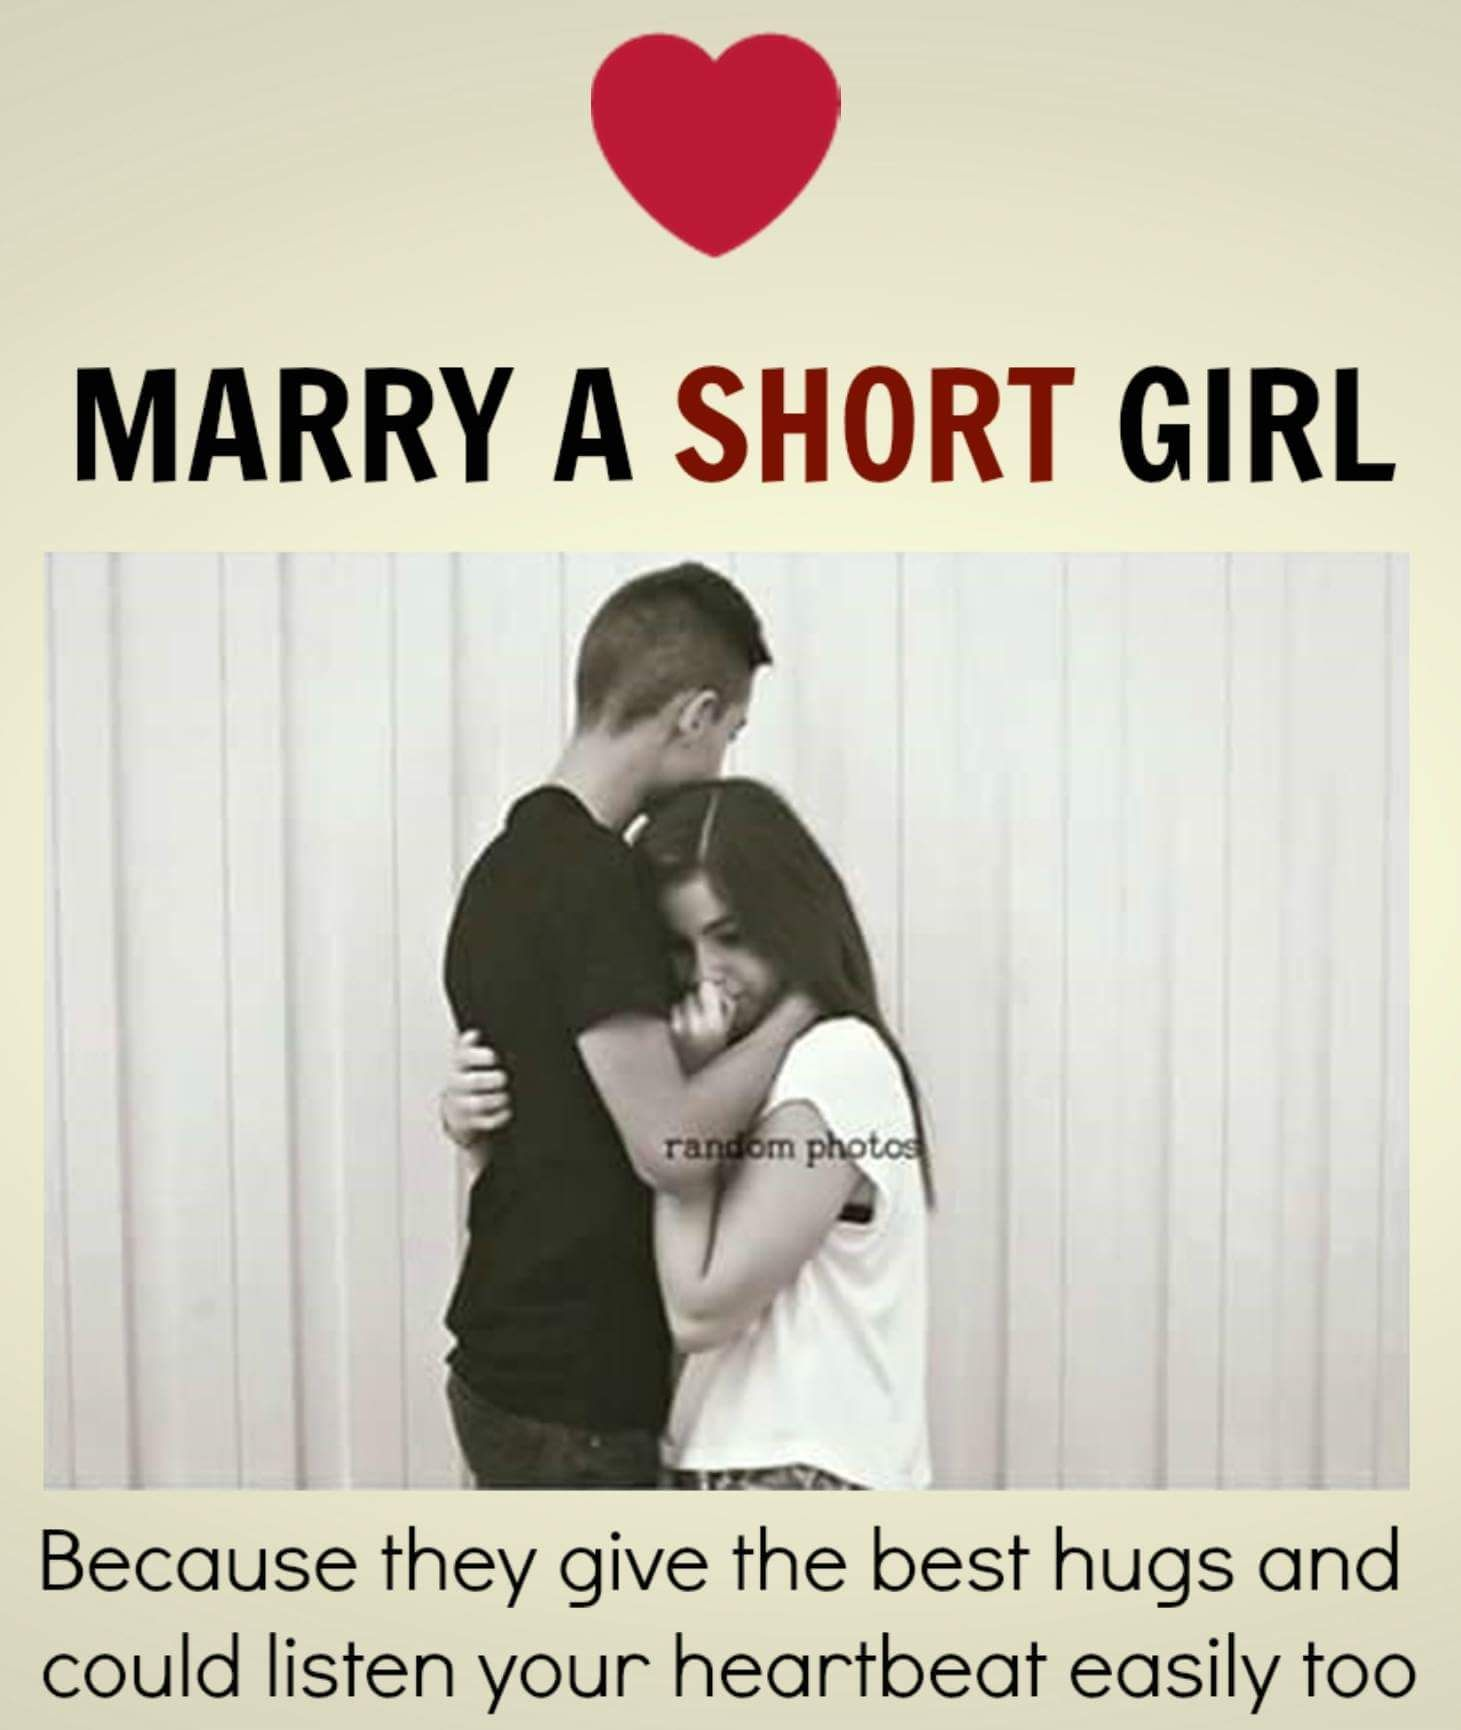 Marry a short girl because they give the best hugs and could